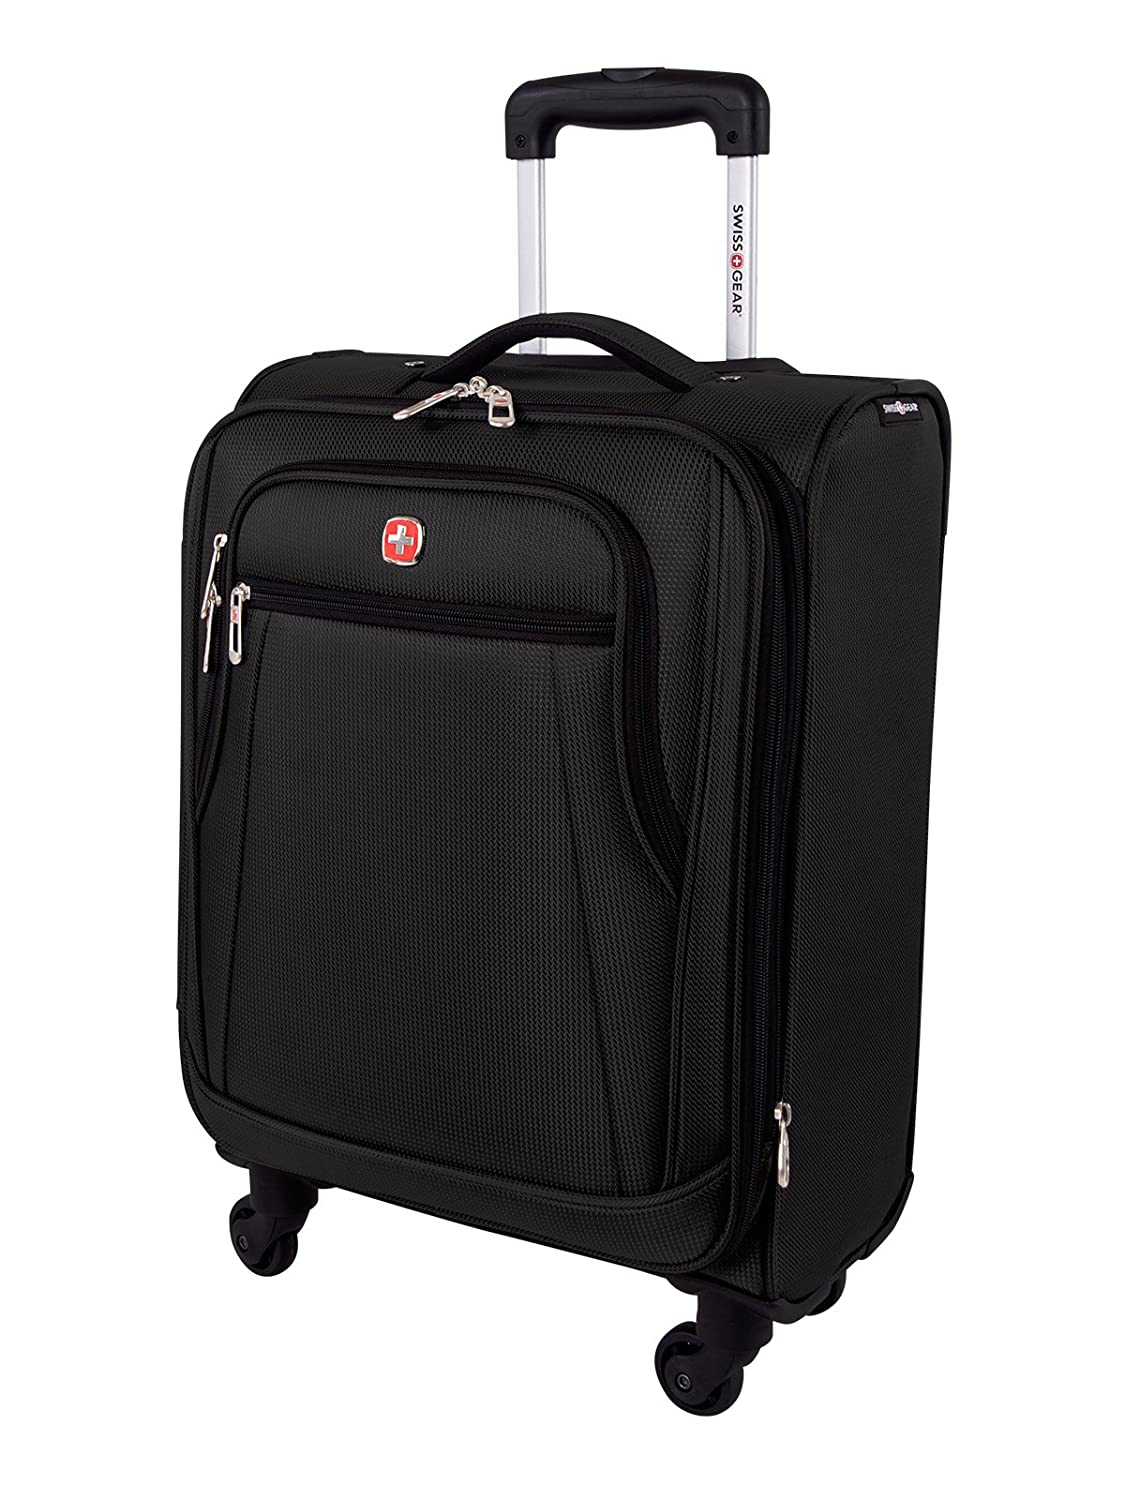 Swiss Gear Cross Country International Carry-on - Expandable Spinner Luggage 20-Inch, Black Holiday Luggage SW49170009